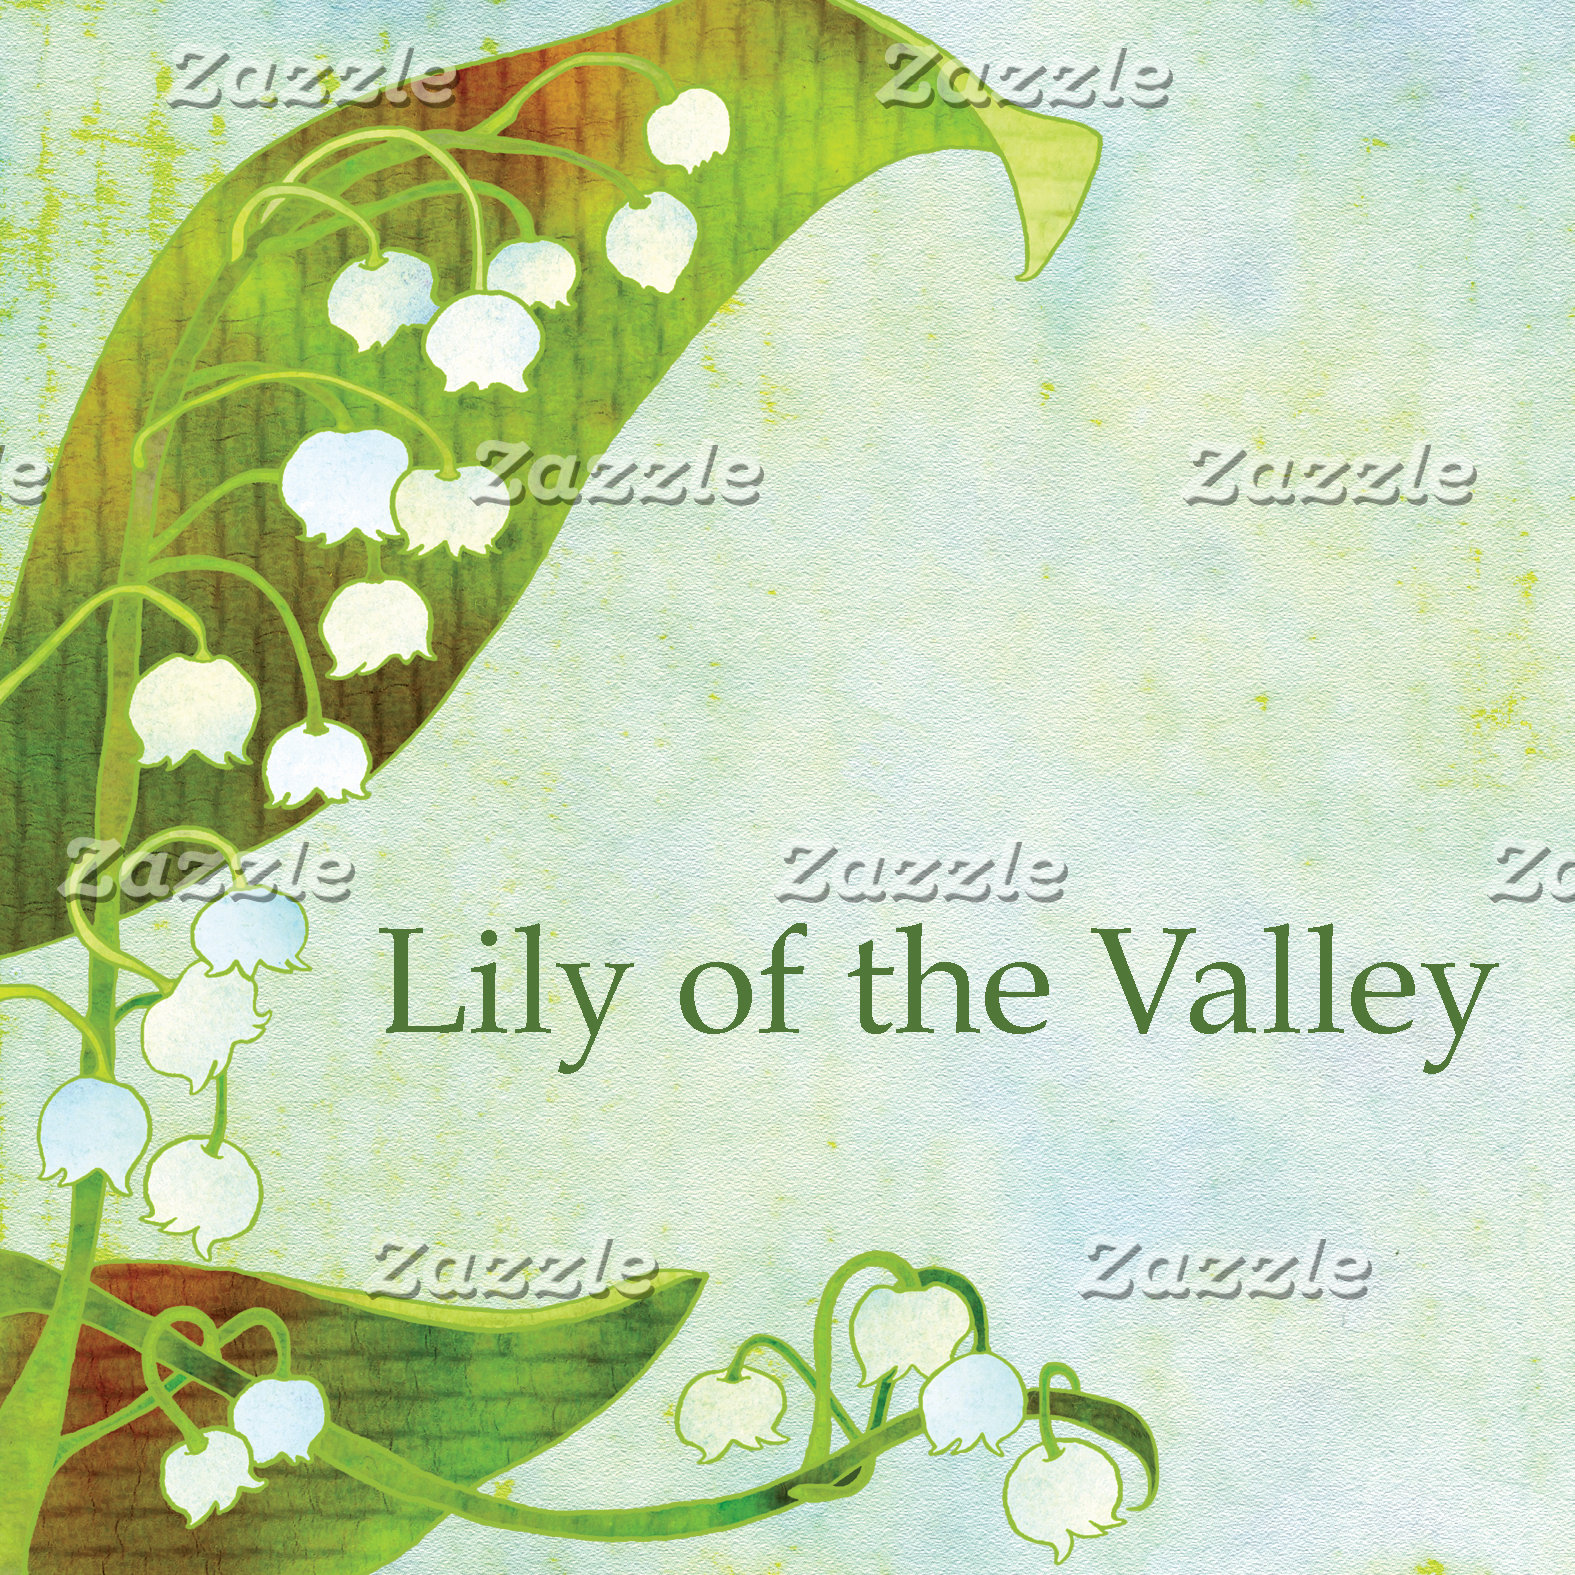 ♥ Lily of the Valley